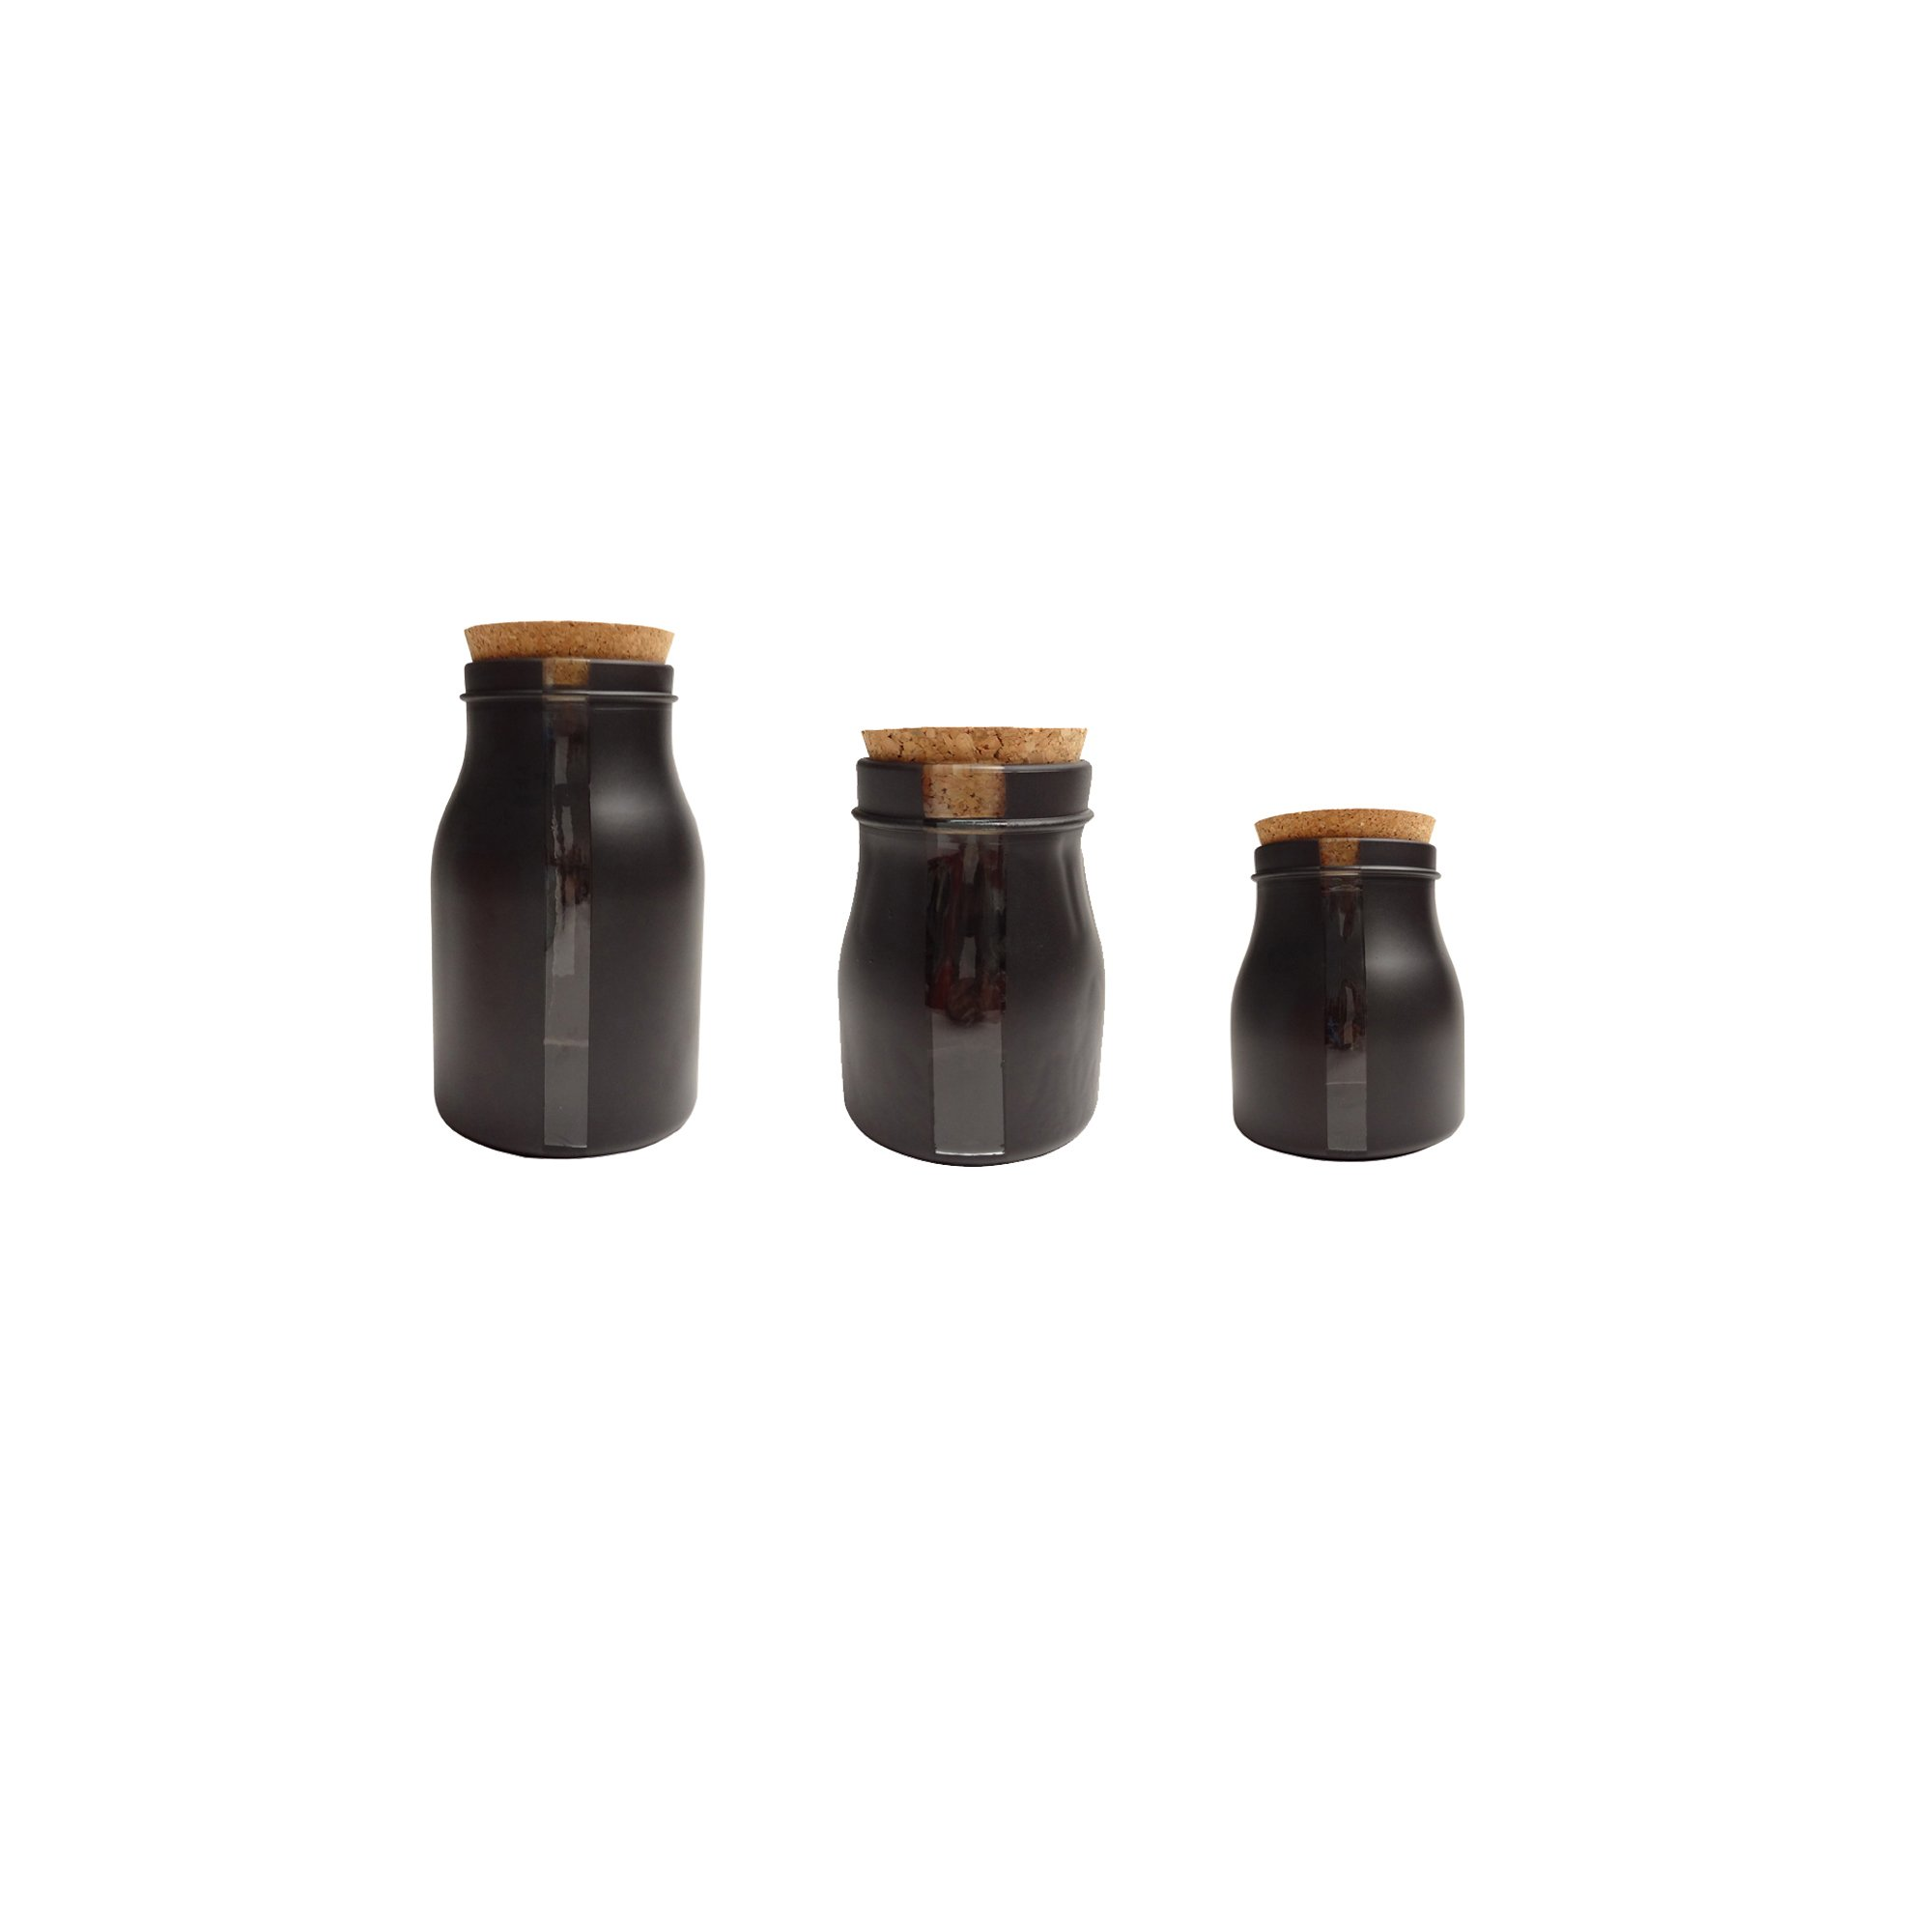 French Home Set of 3, 68-ounce,40-ounce,8.5-ounce Black Vertical Window Jars